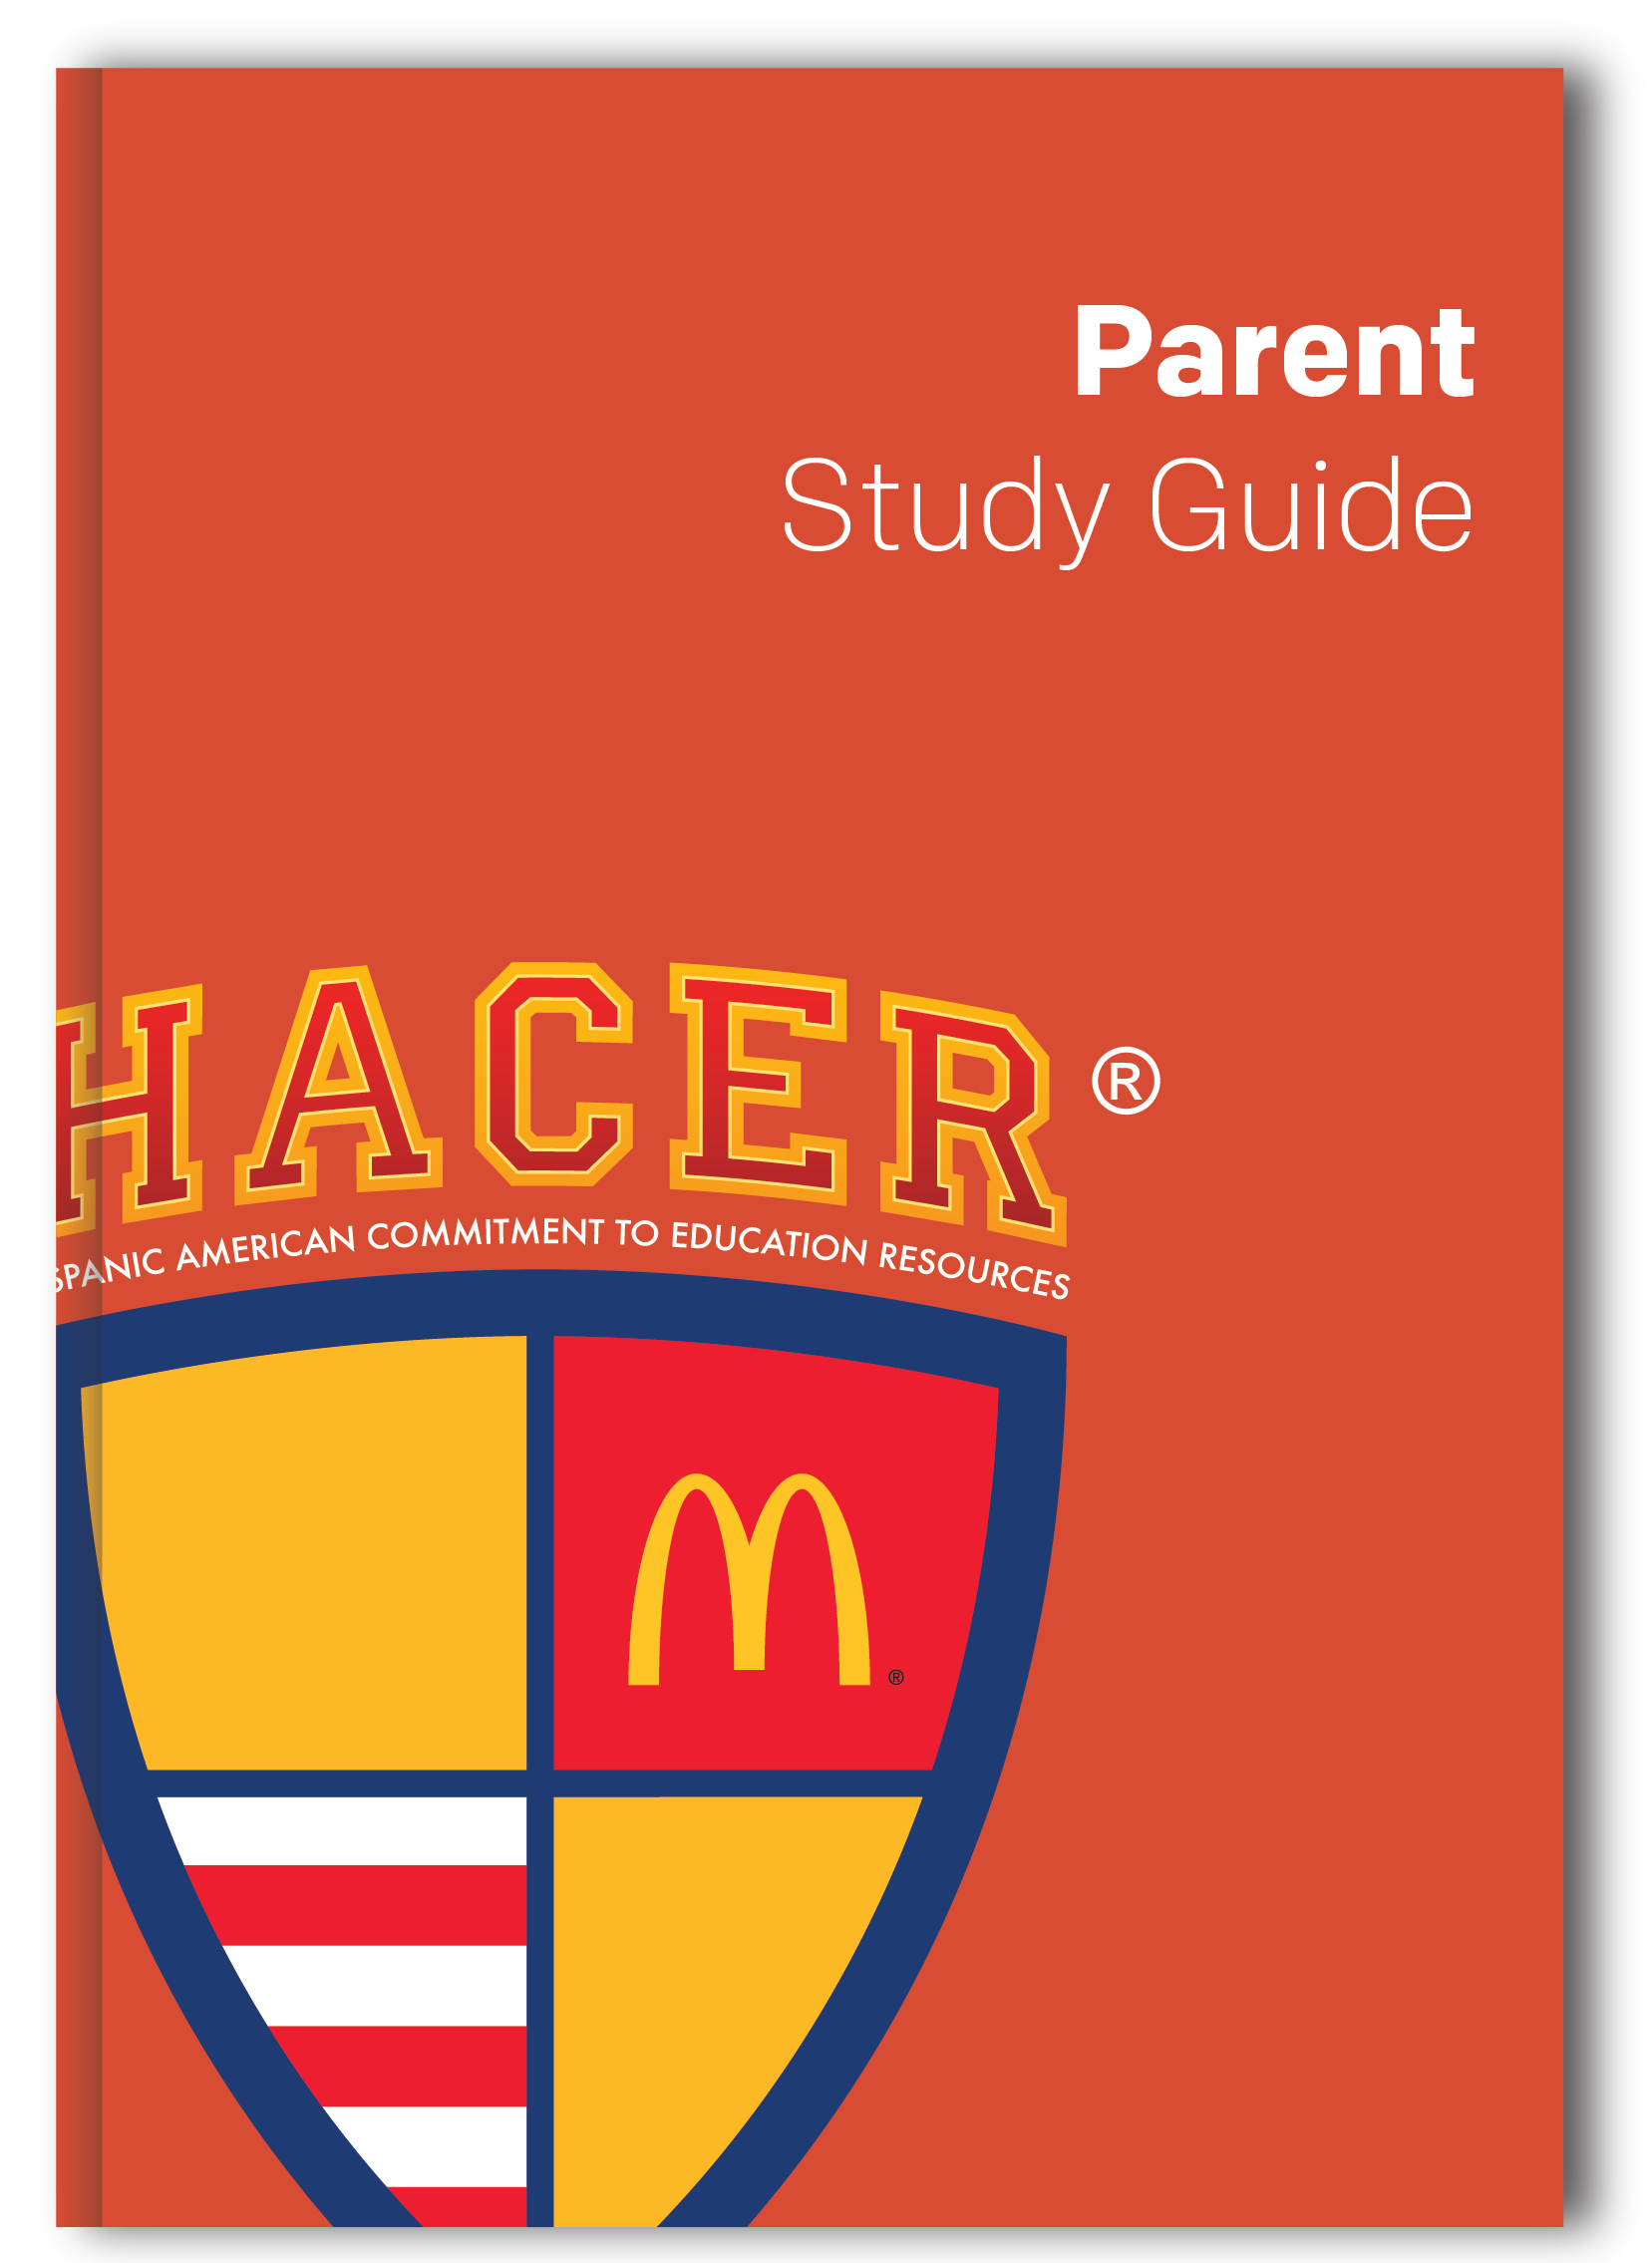 Parent Resources - Download the complete HACER® Parent Study Guide.Individual resources:How to help your studentParent InvestmentWhat's the process of applying to schools?Education ProcessWhat to look for when visiting schoolsSchool Visit ChecklistWhat are the dates to look out for?Important Dates